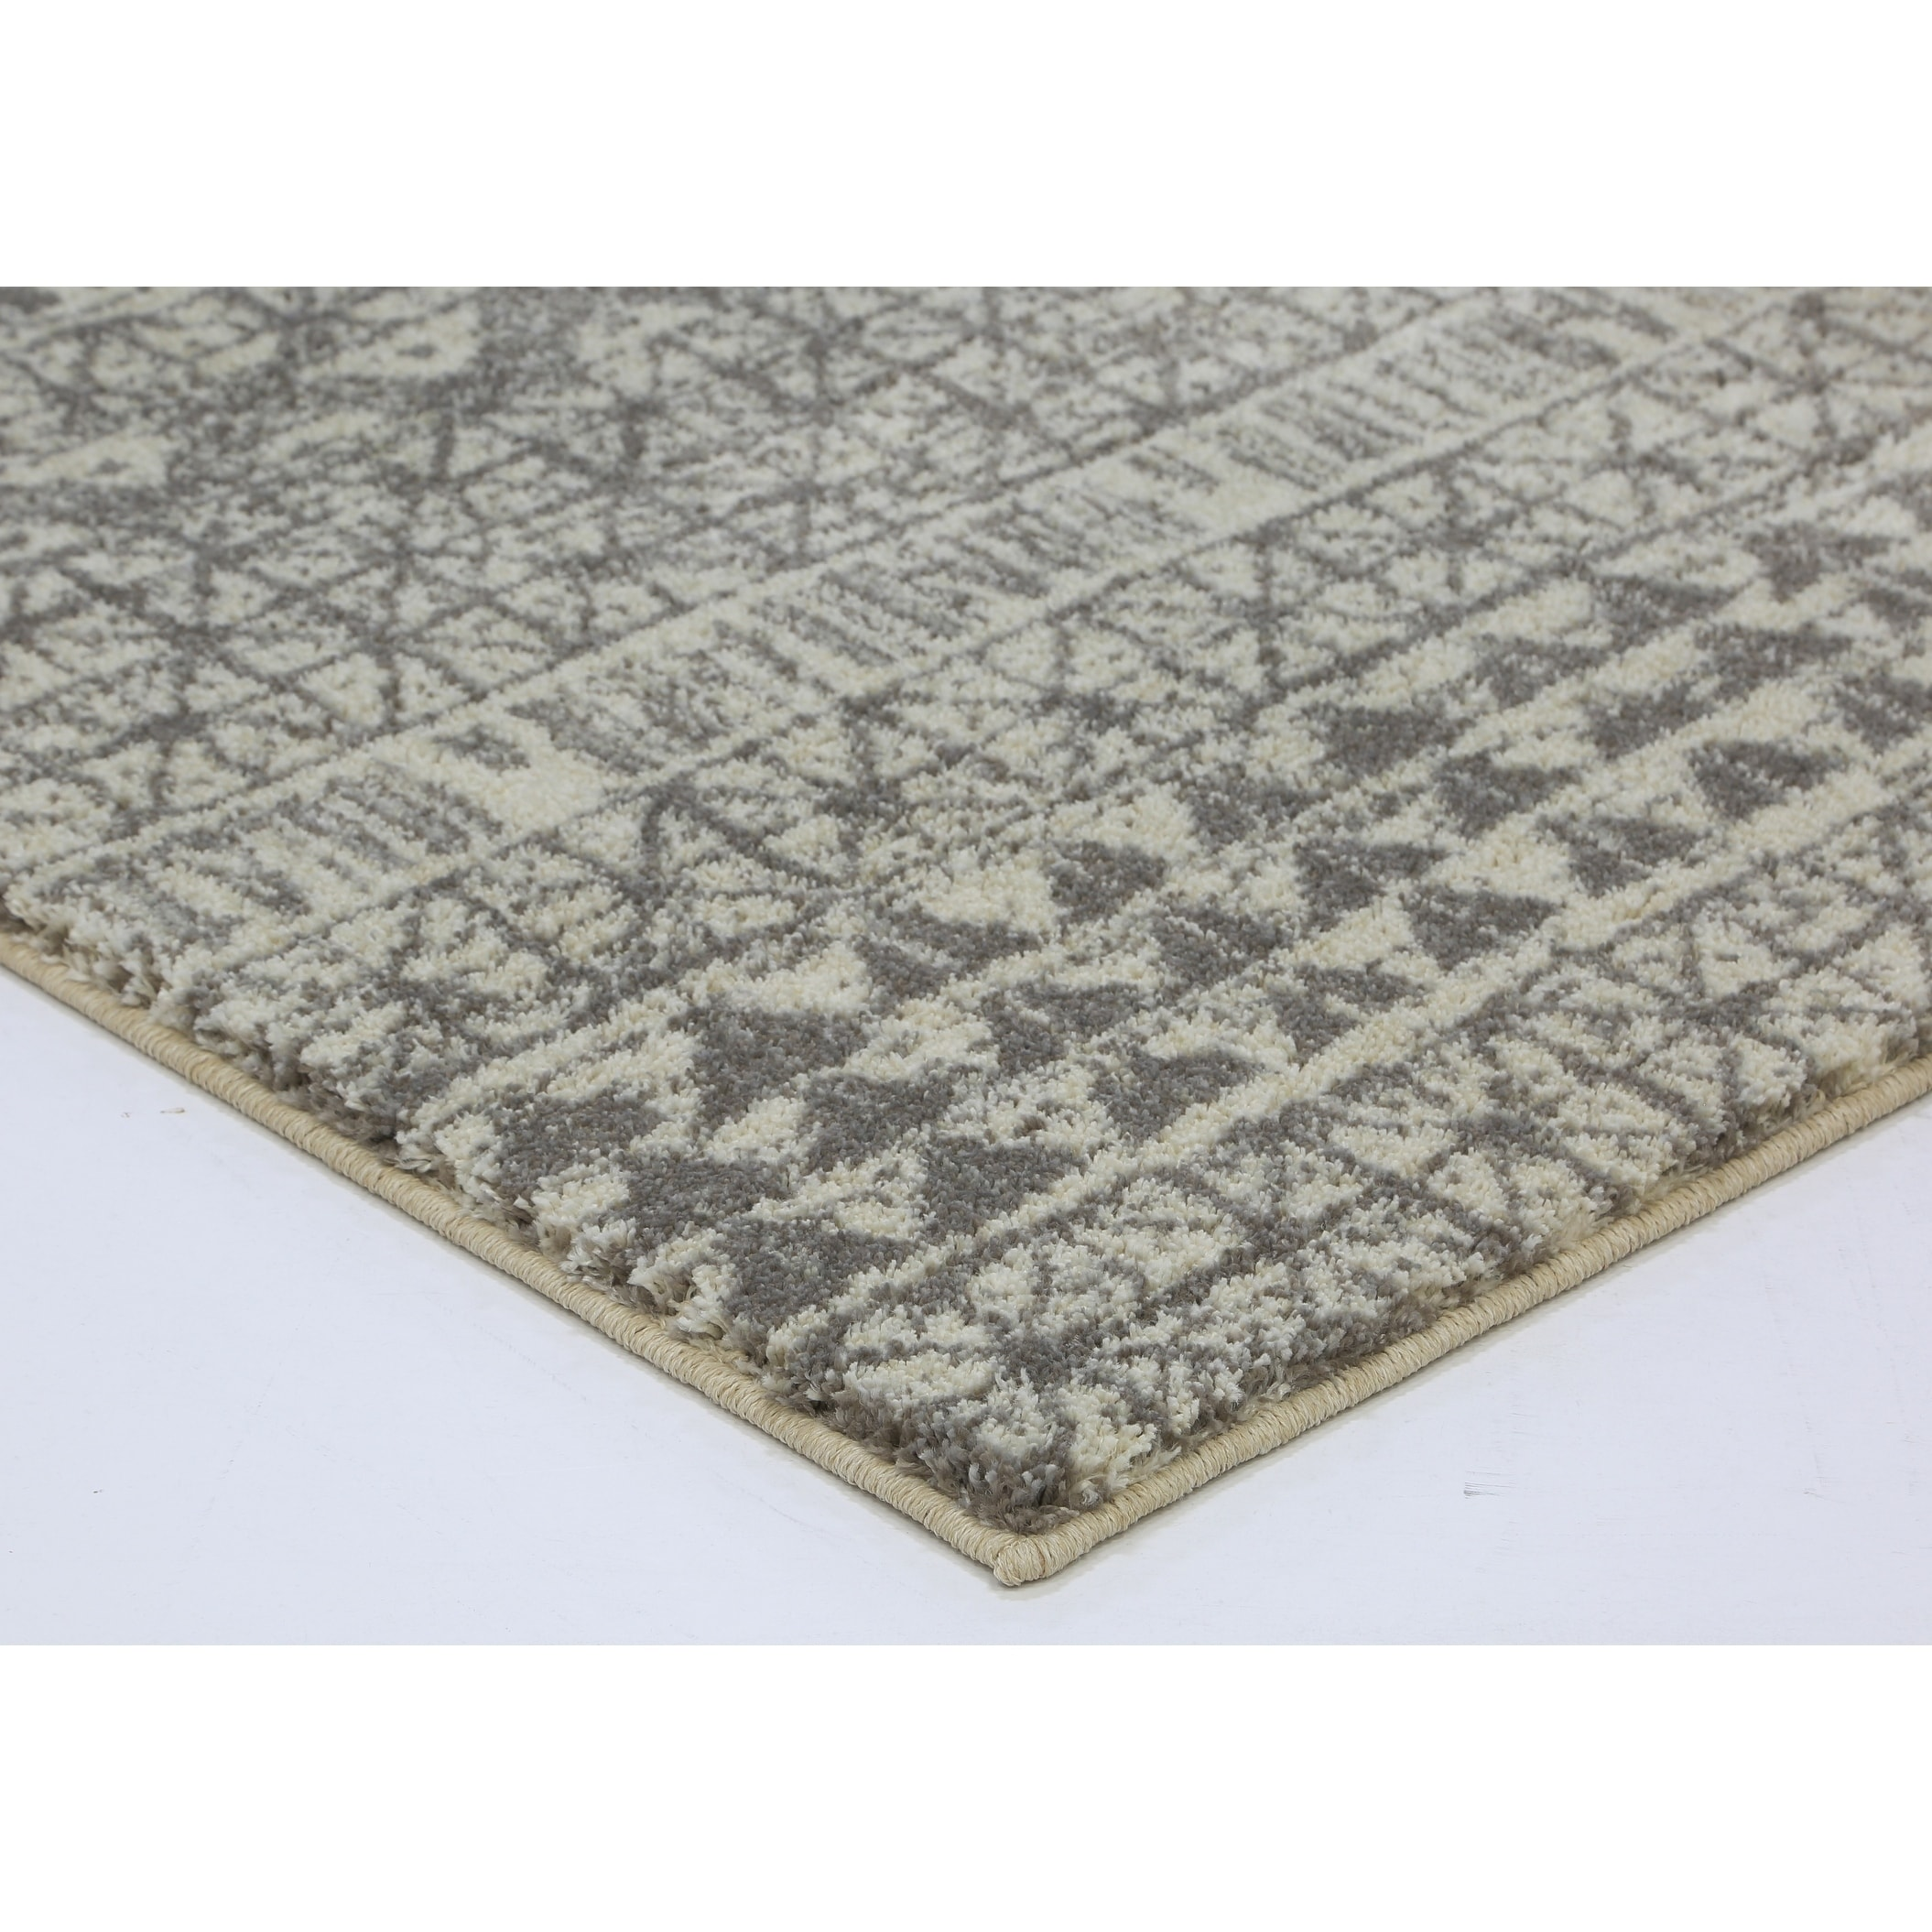 large viscose rugs gray area and view rug rc x design shaggy grey jsp rcwilley beige furniture